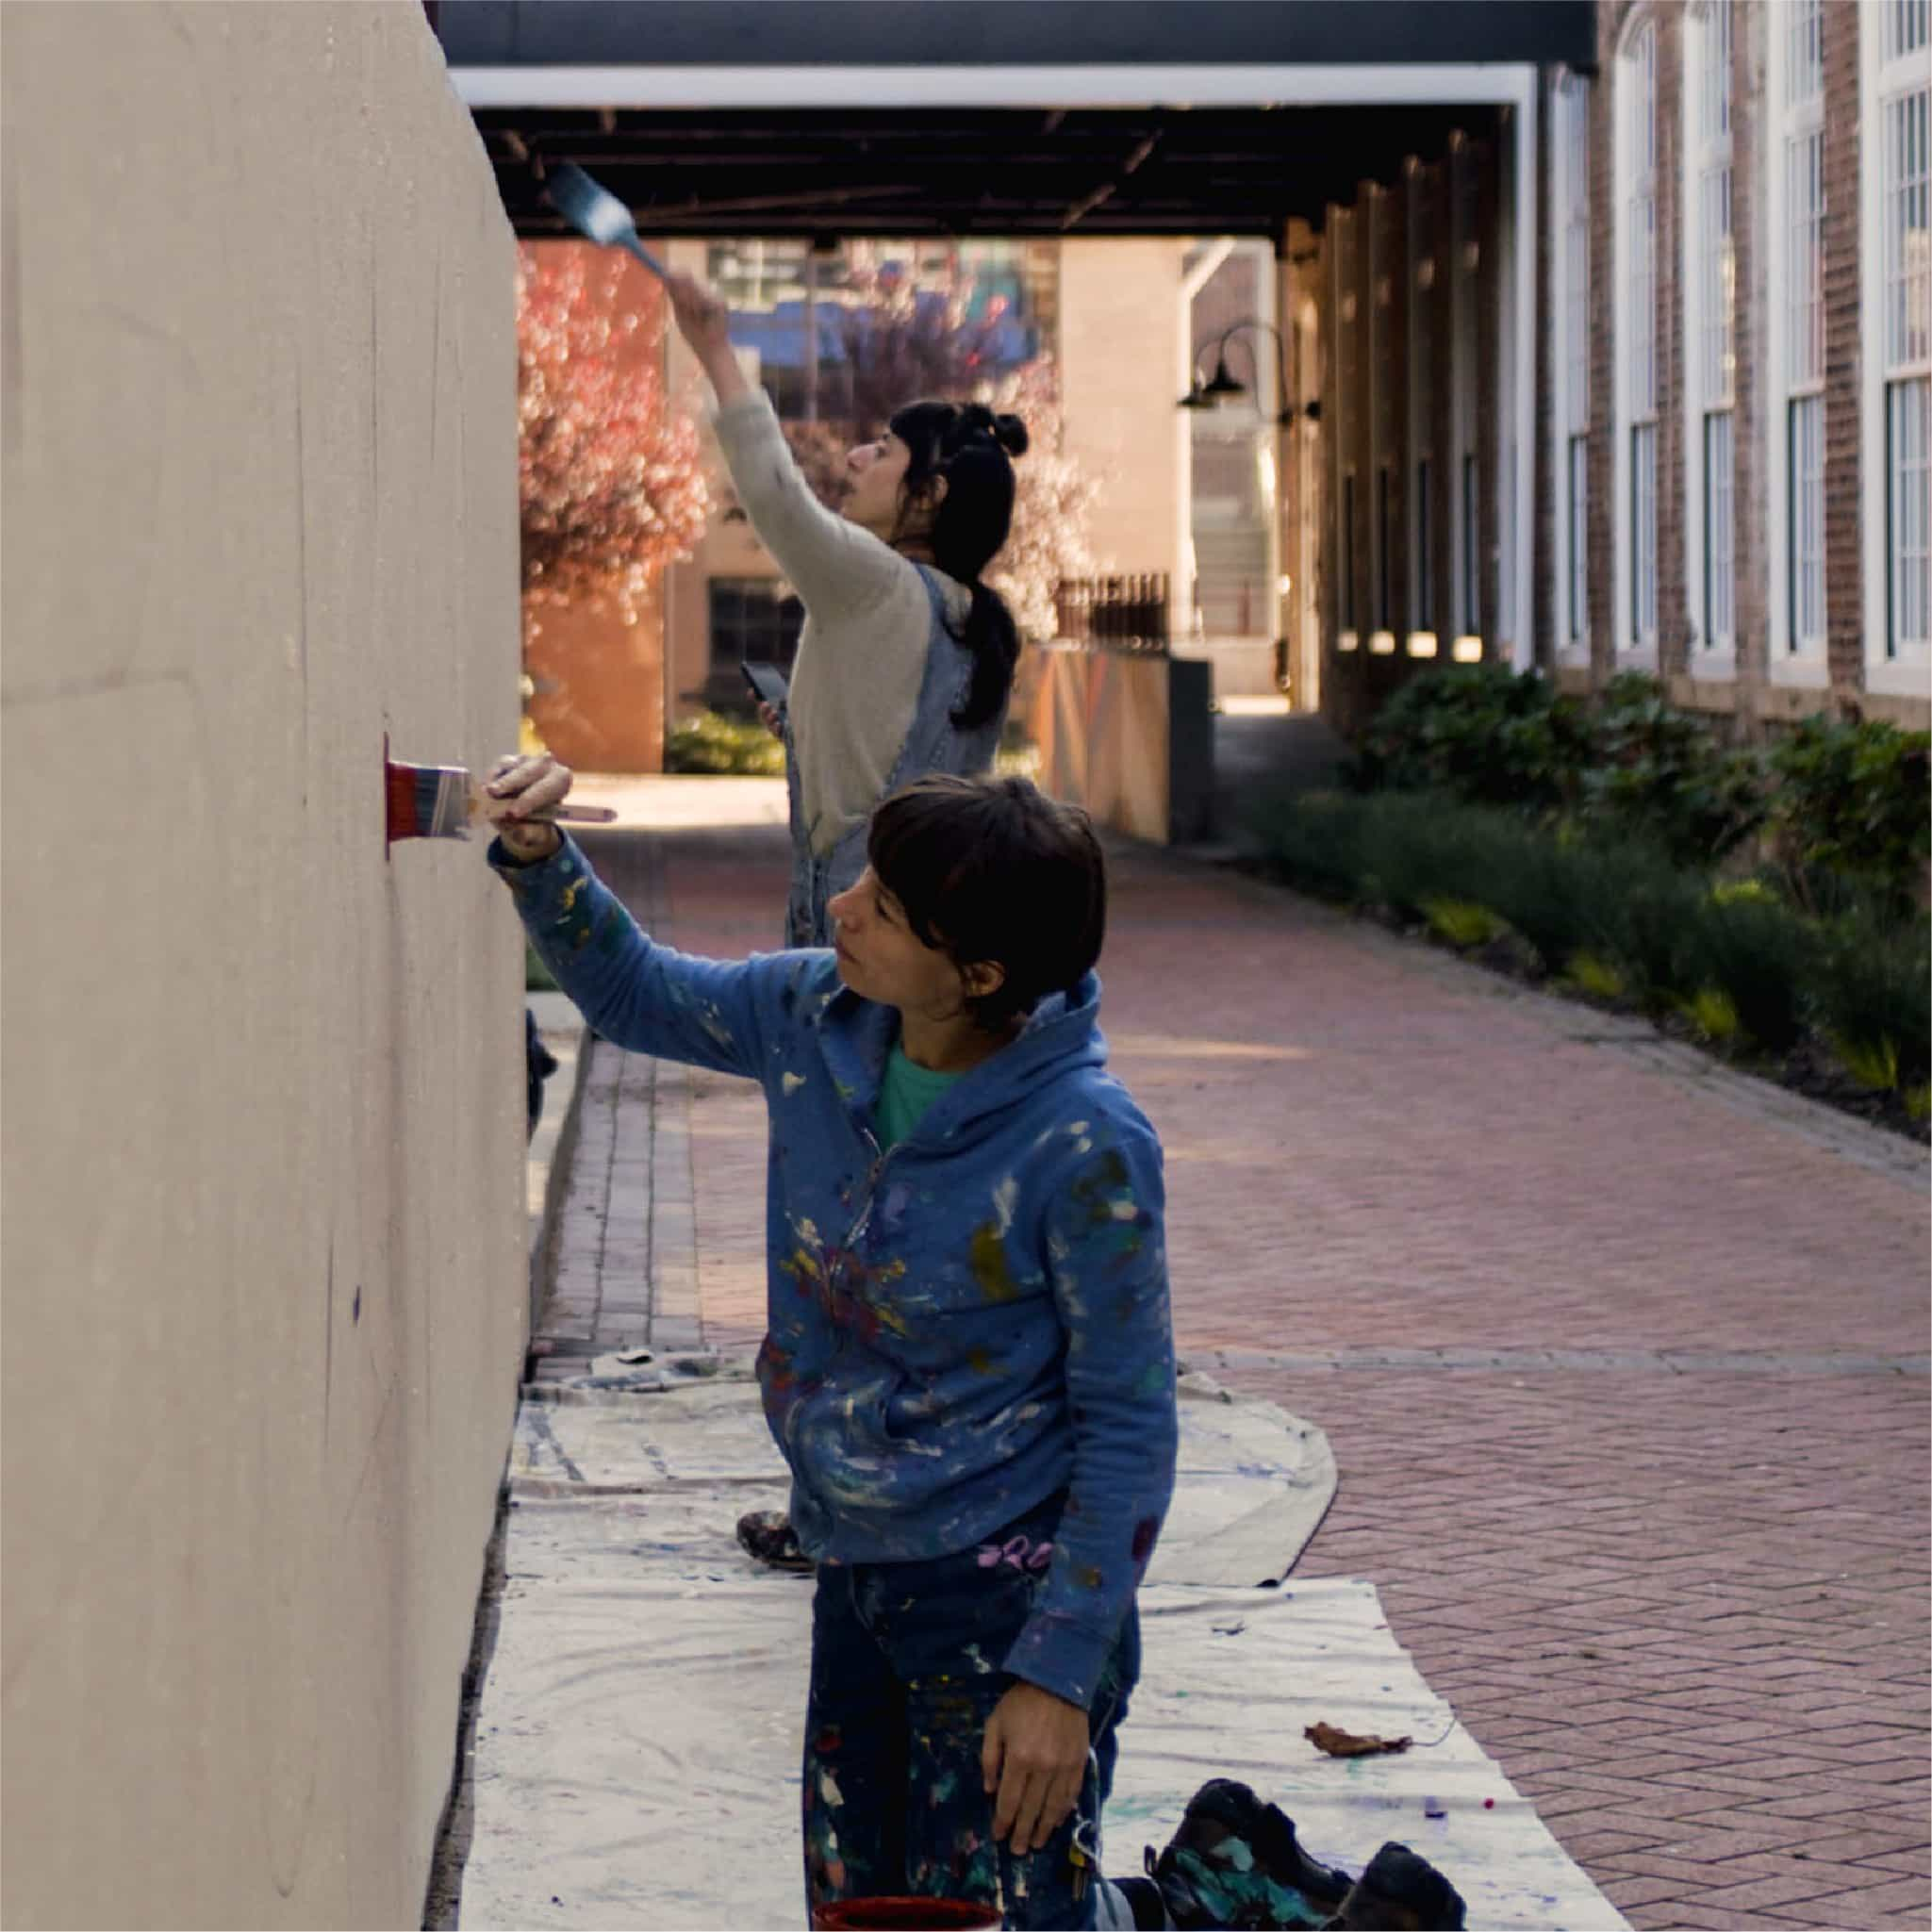 Jessie & Katey painting mural on wall